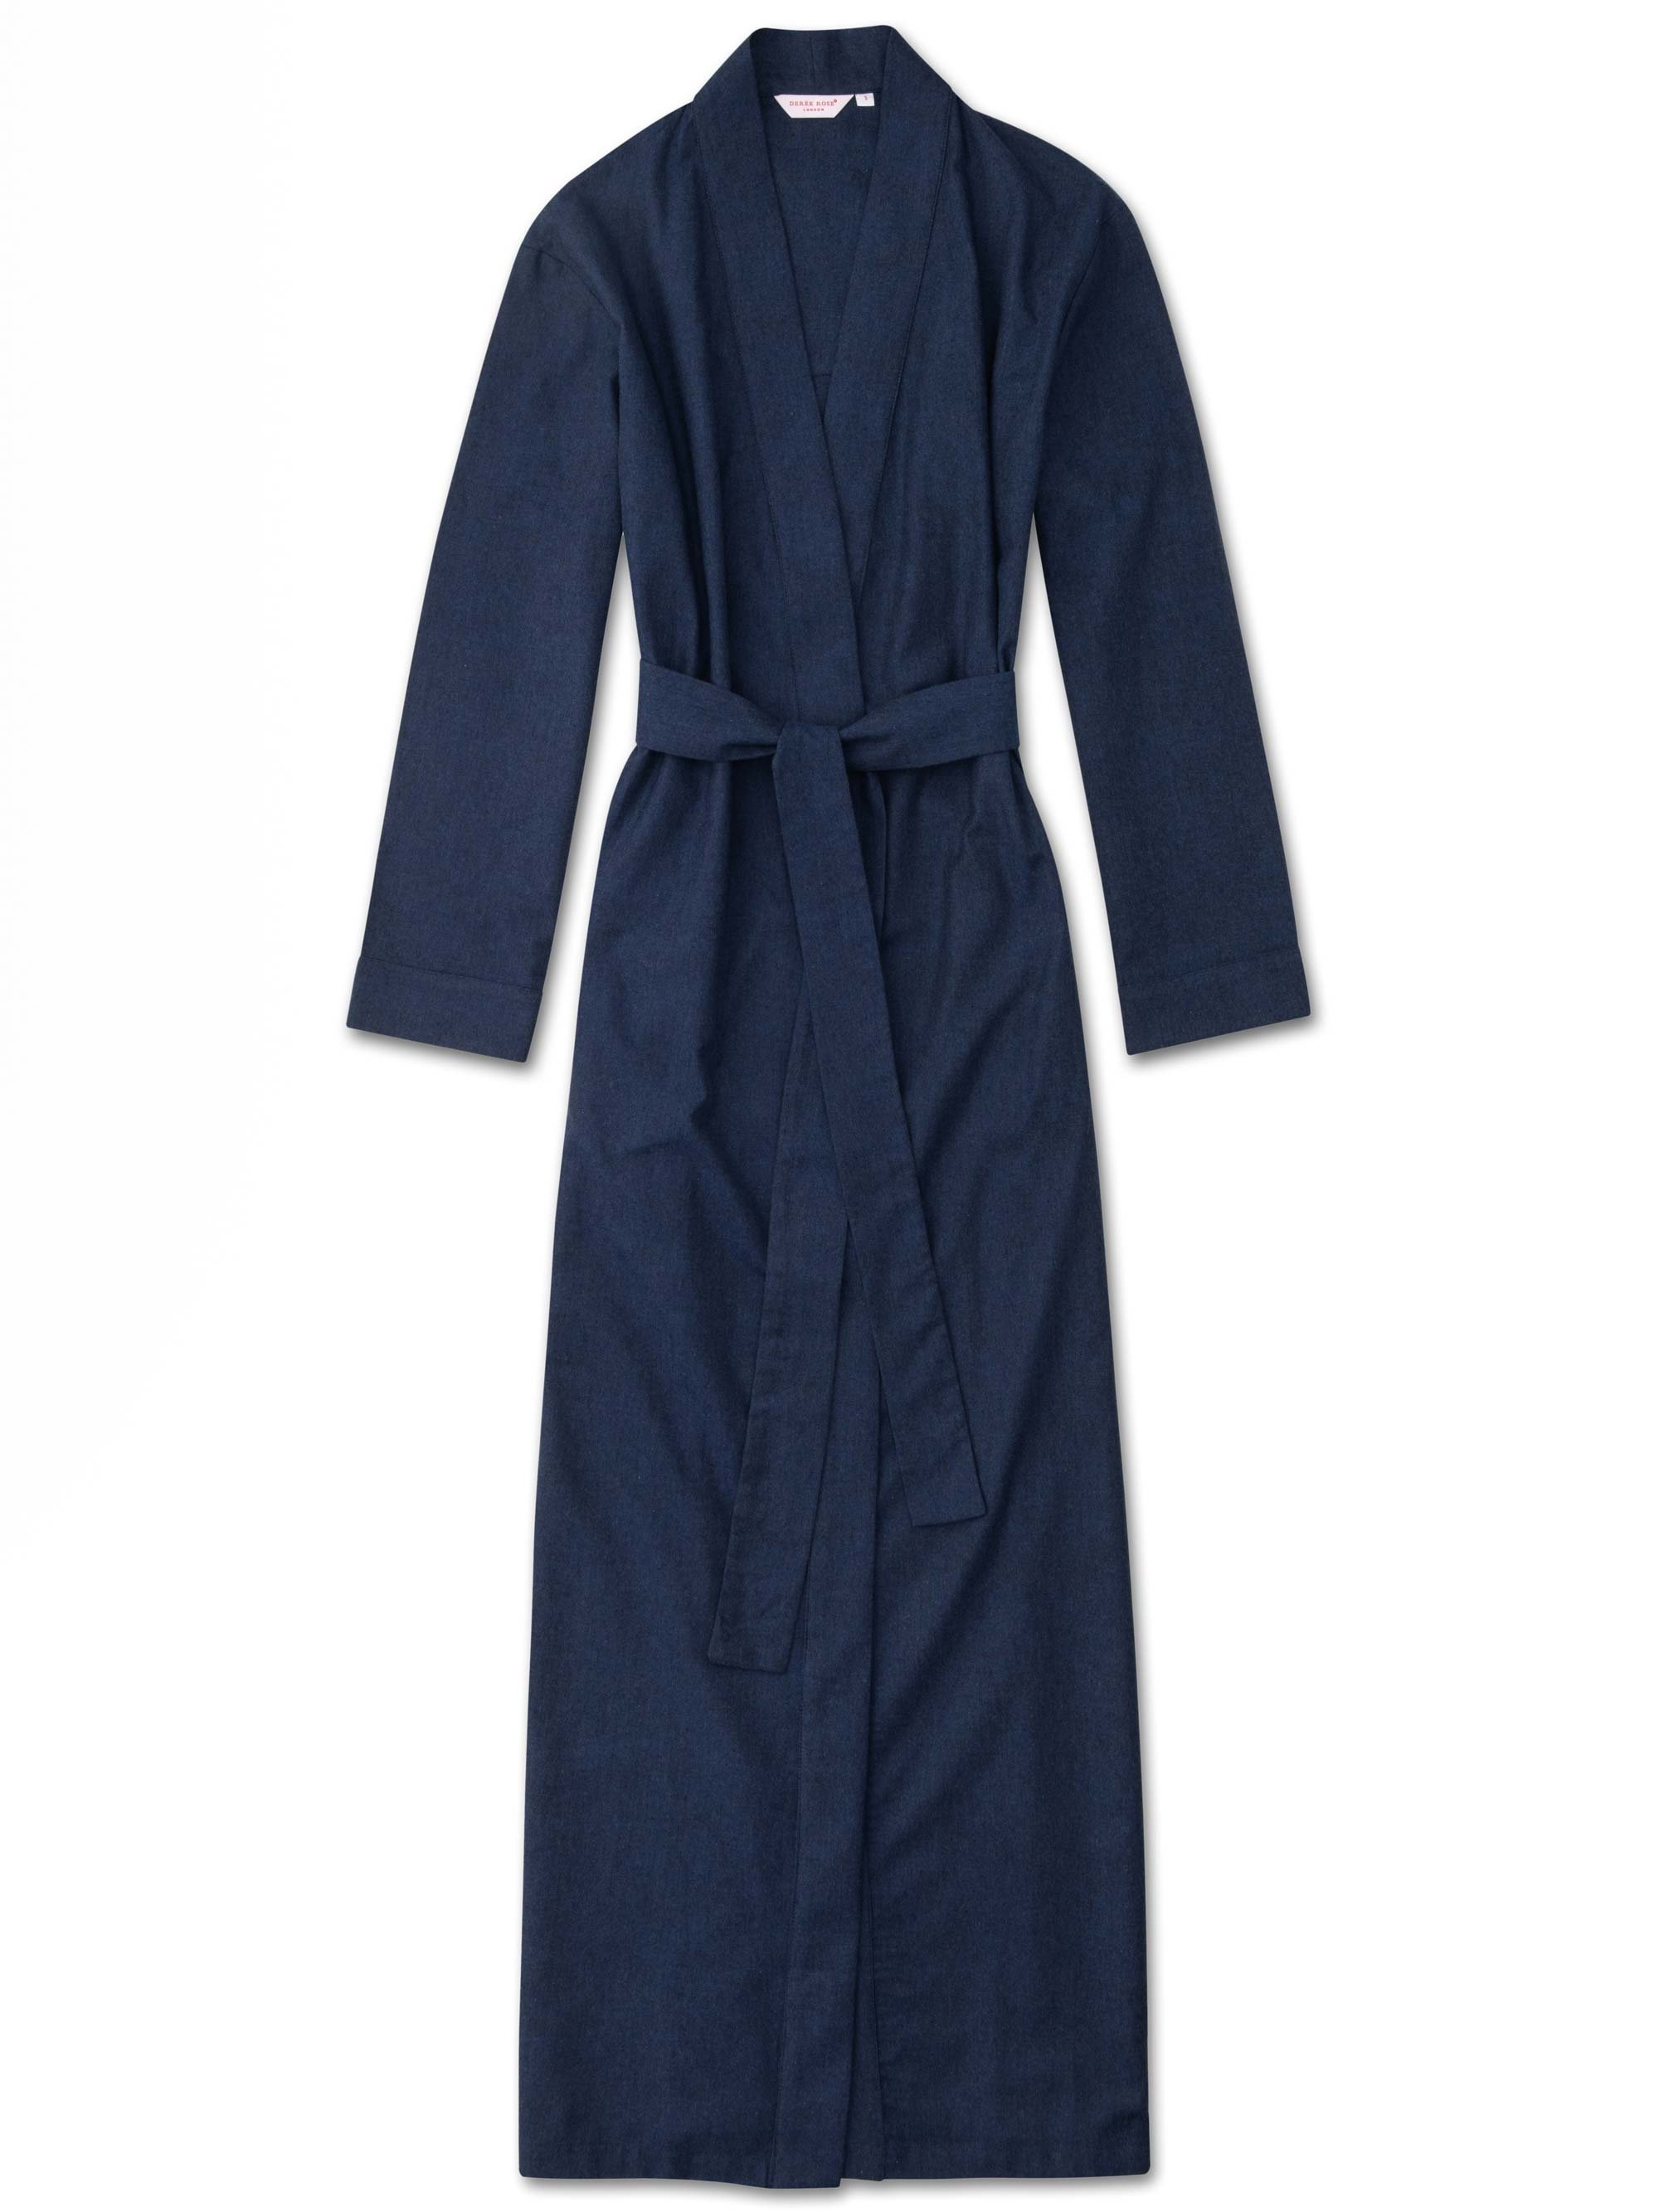 Women's Full Length Dressing Gown Balmoral 3 Brushed Cotton Navy